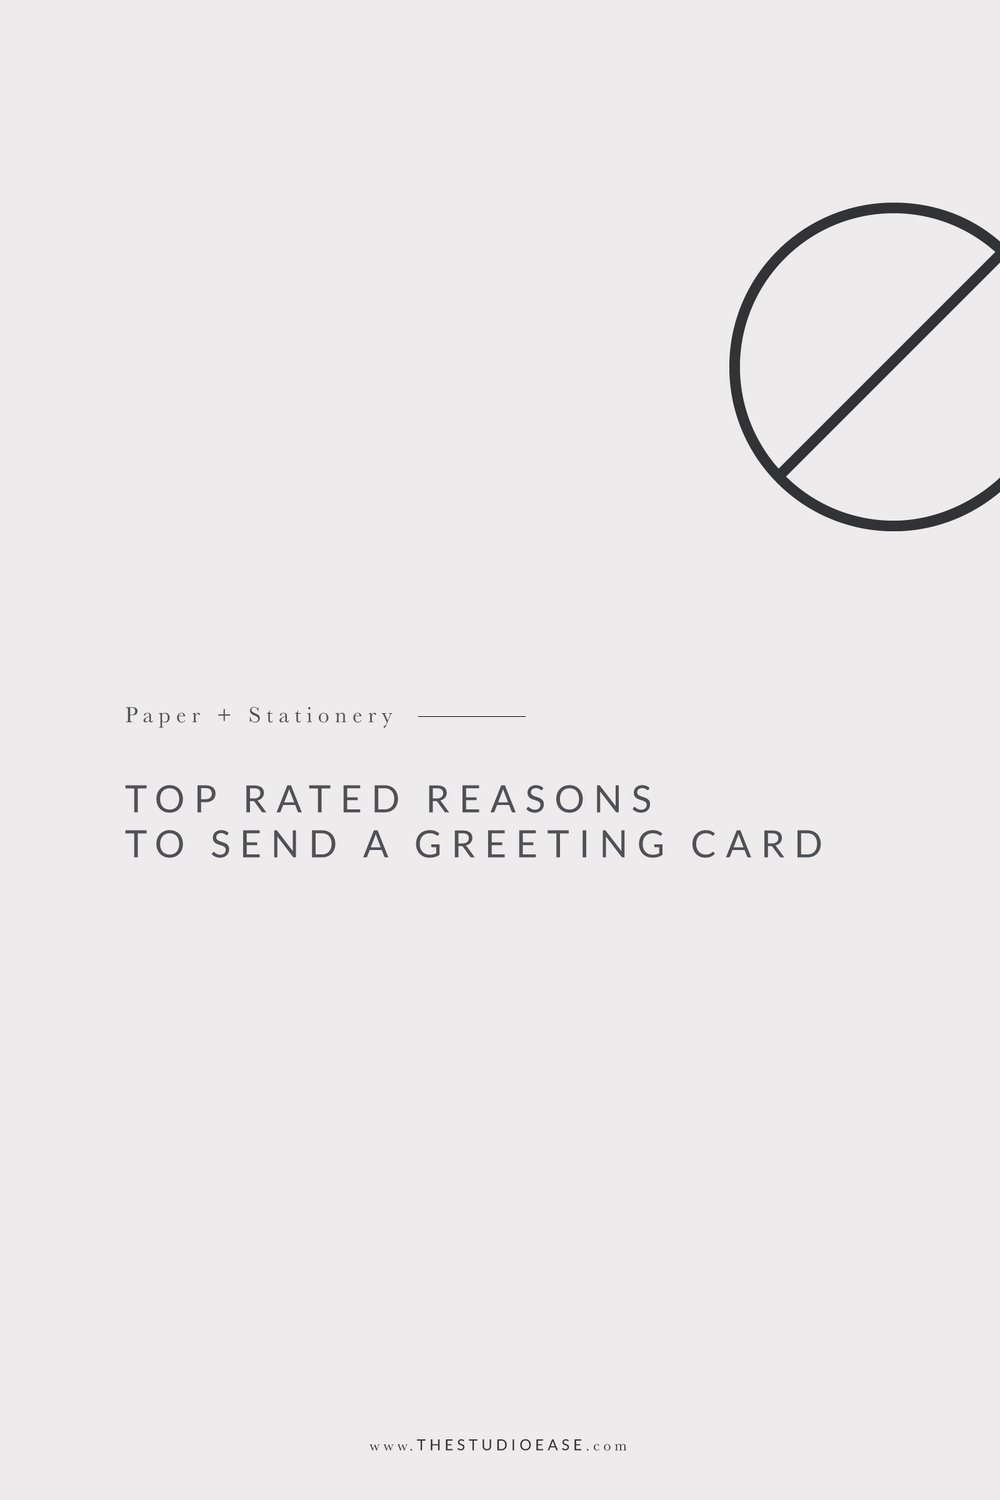 Top Rated Reasons to Send a Greeting Card | gifts for her, gifts for him, birthday, sympathy, millennials